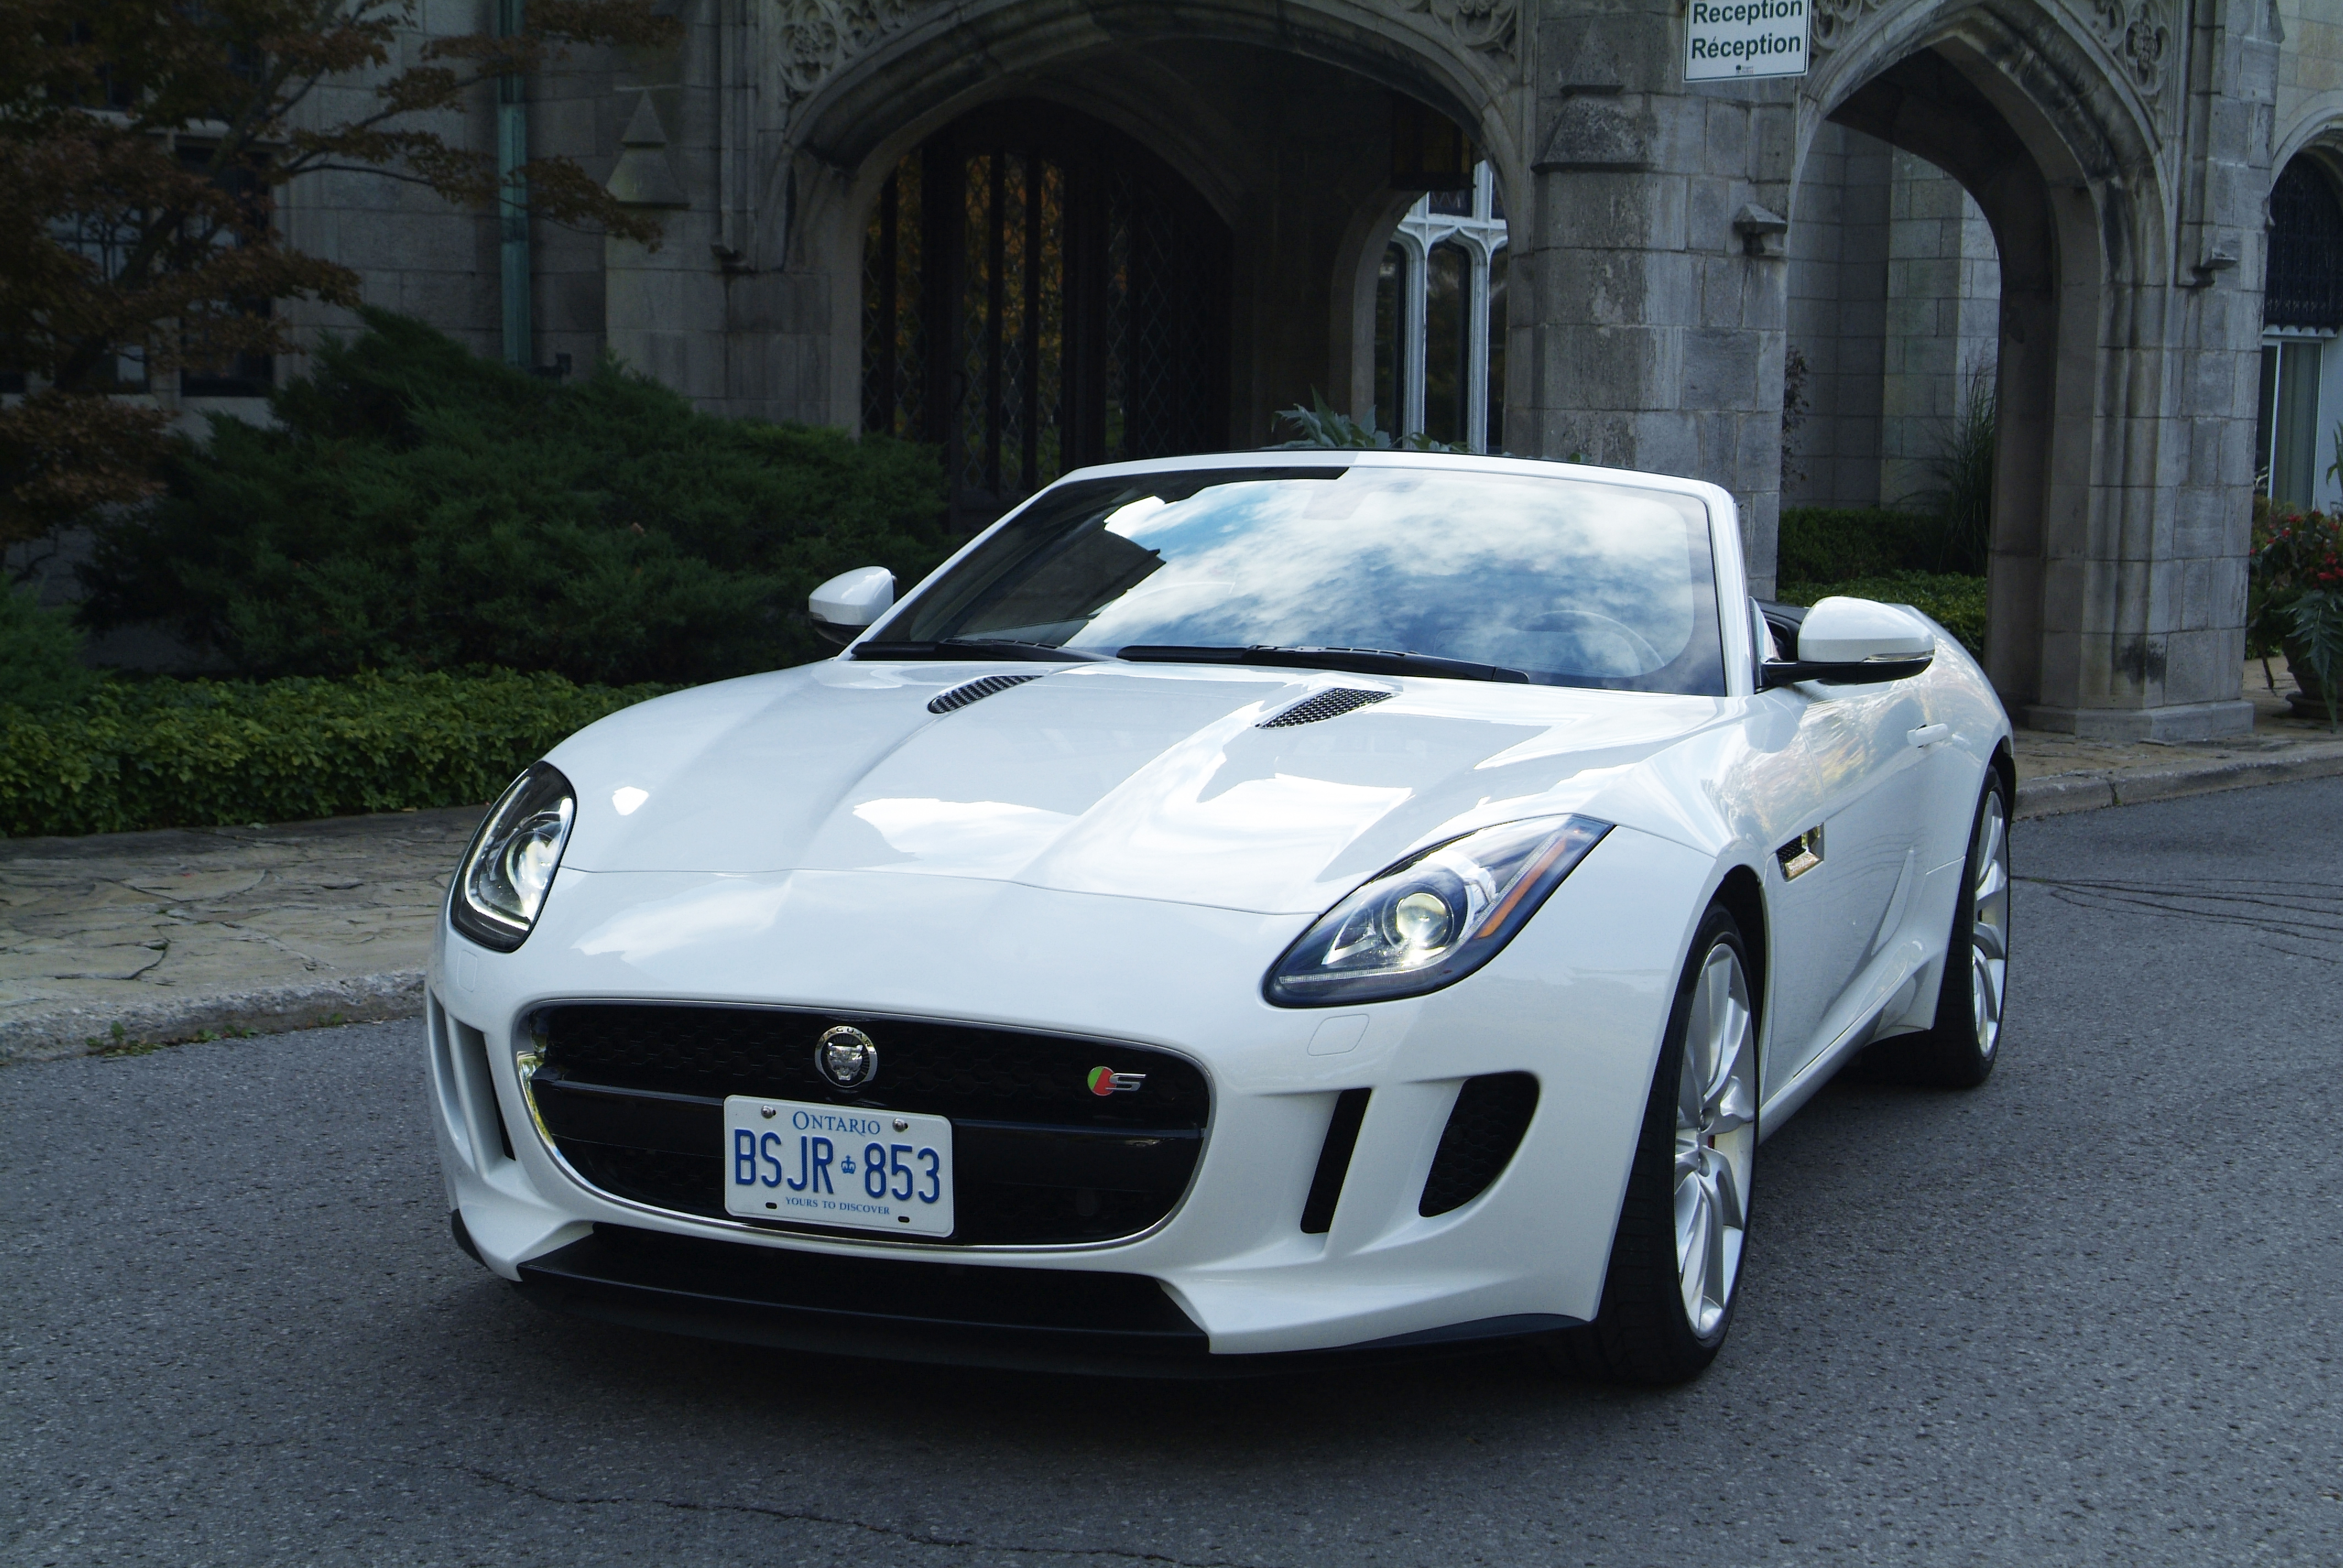 2014 Jaguar F-Type Convertible White